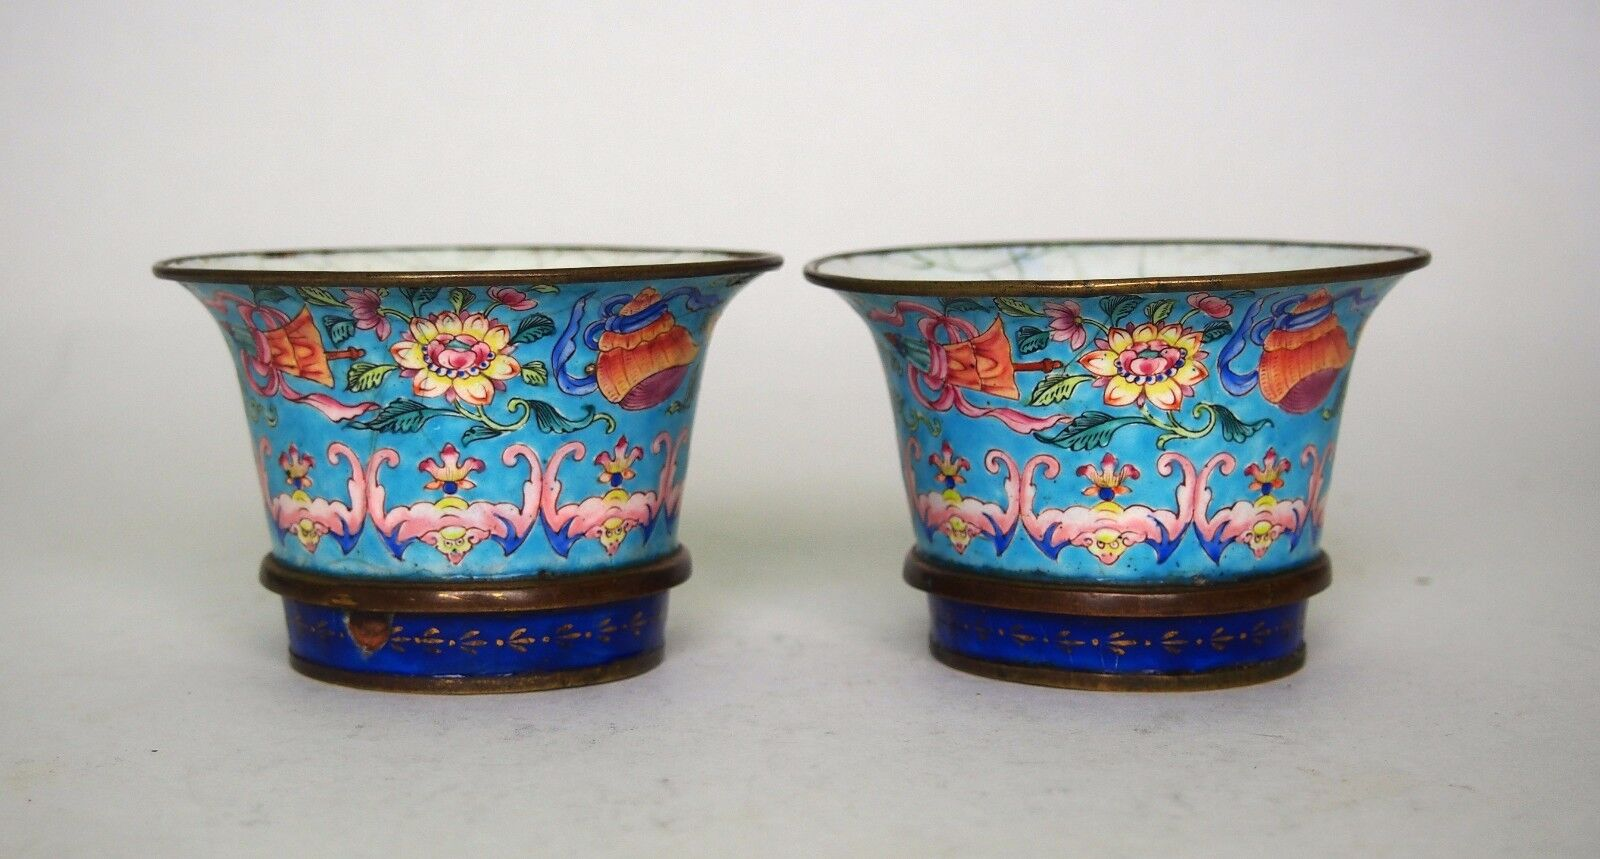 A Pair of Chinese Painted Enamelled Cups, Qing Dynasty